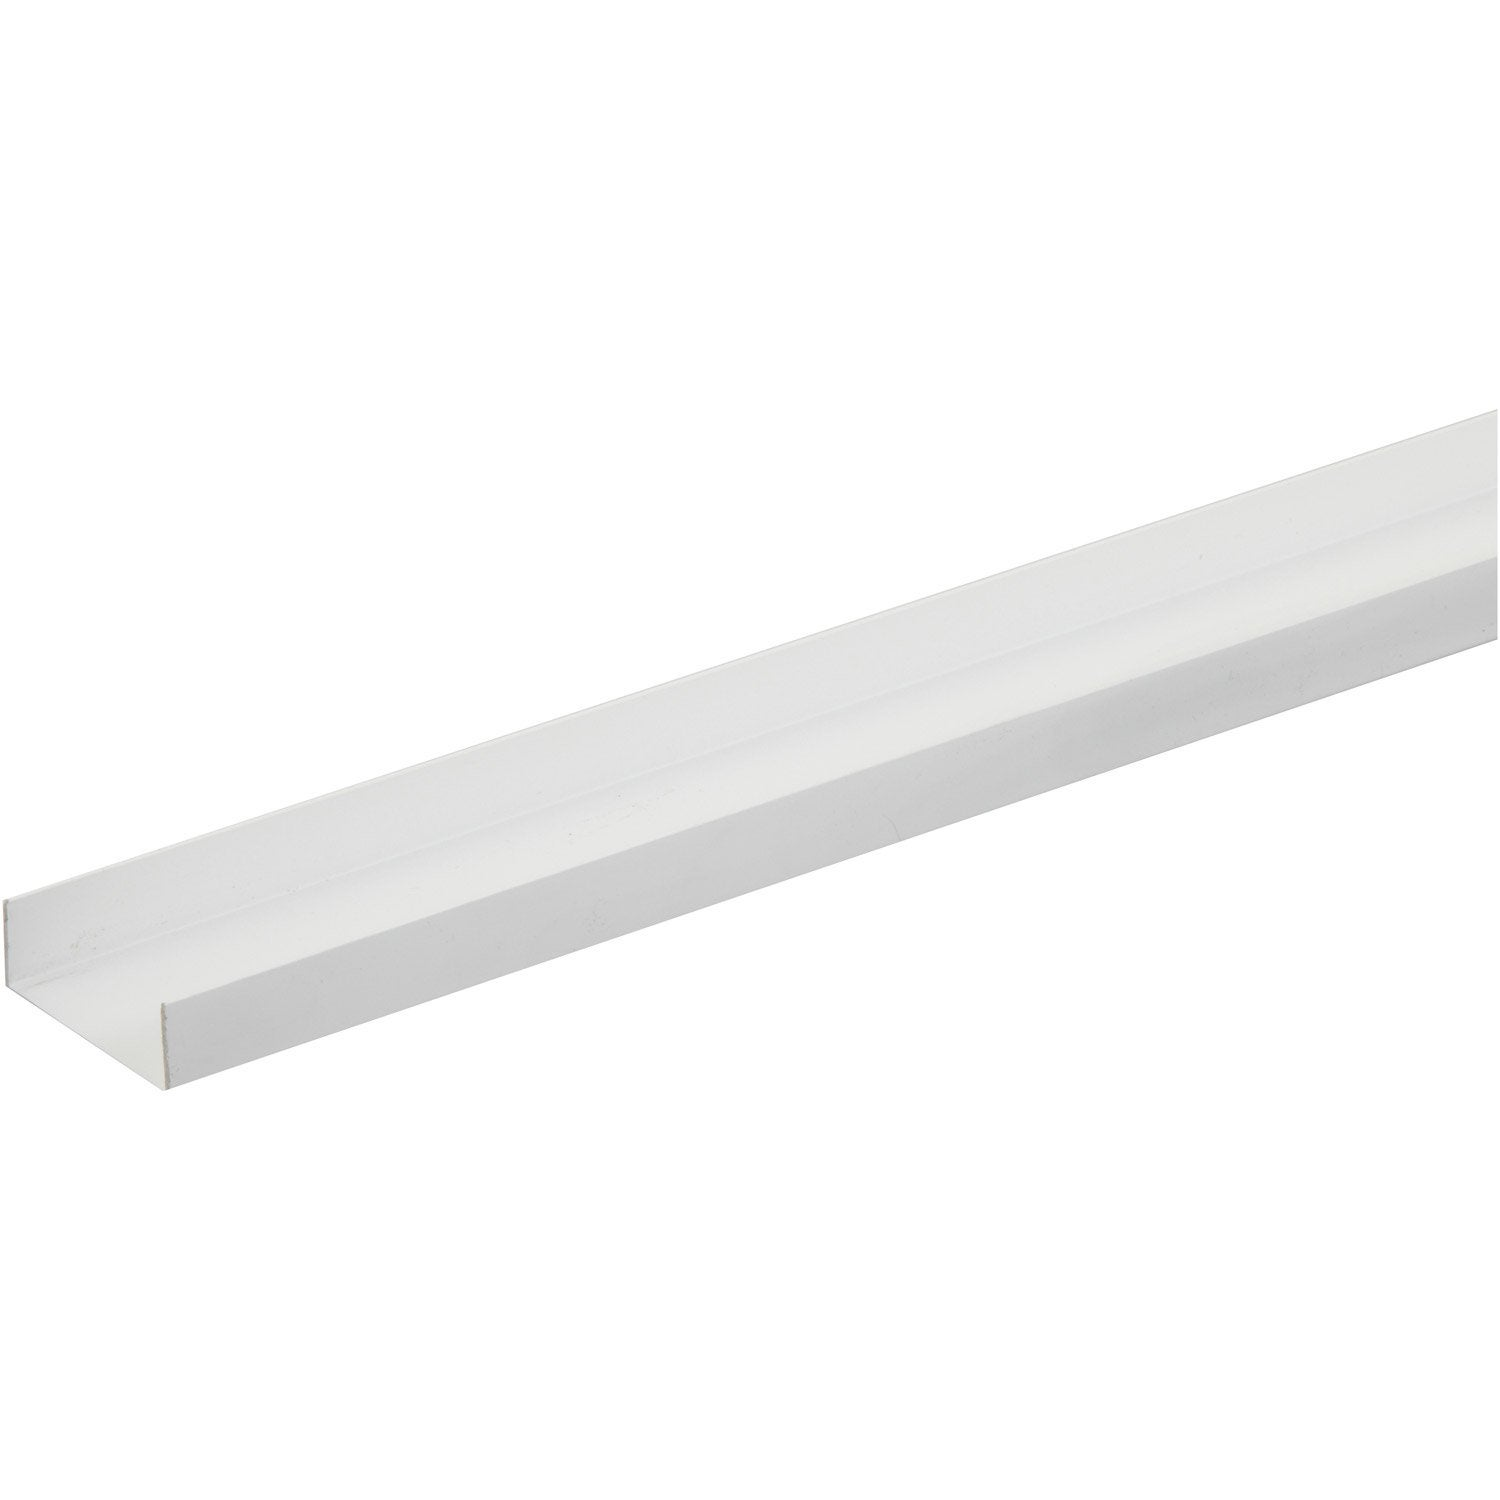 Nez de cloison profil en pvc long 250cm section 54x1mm for Leroy merlin cloison